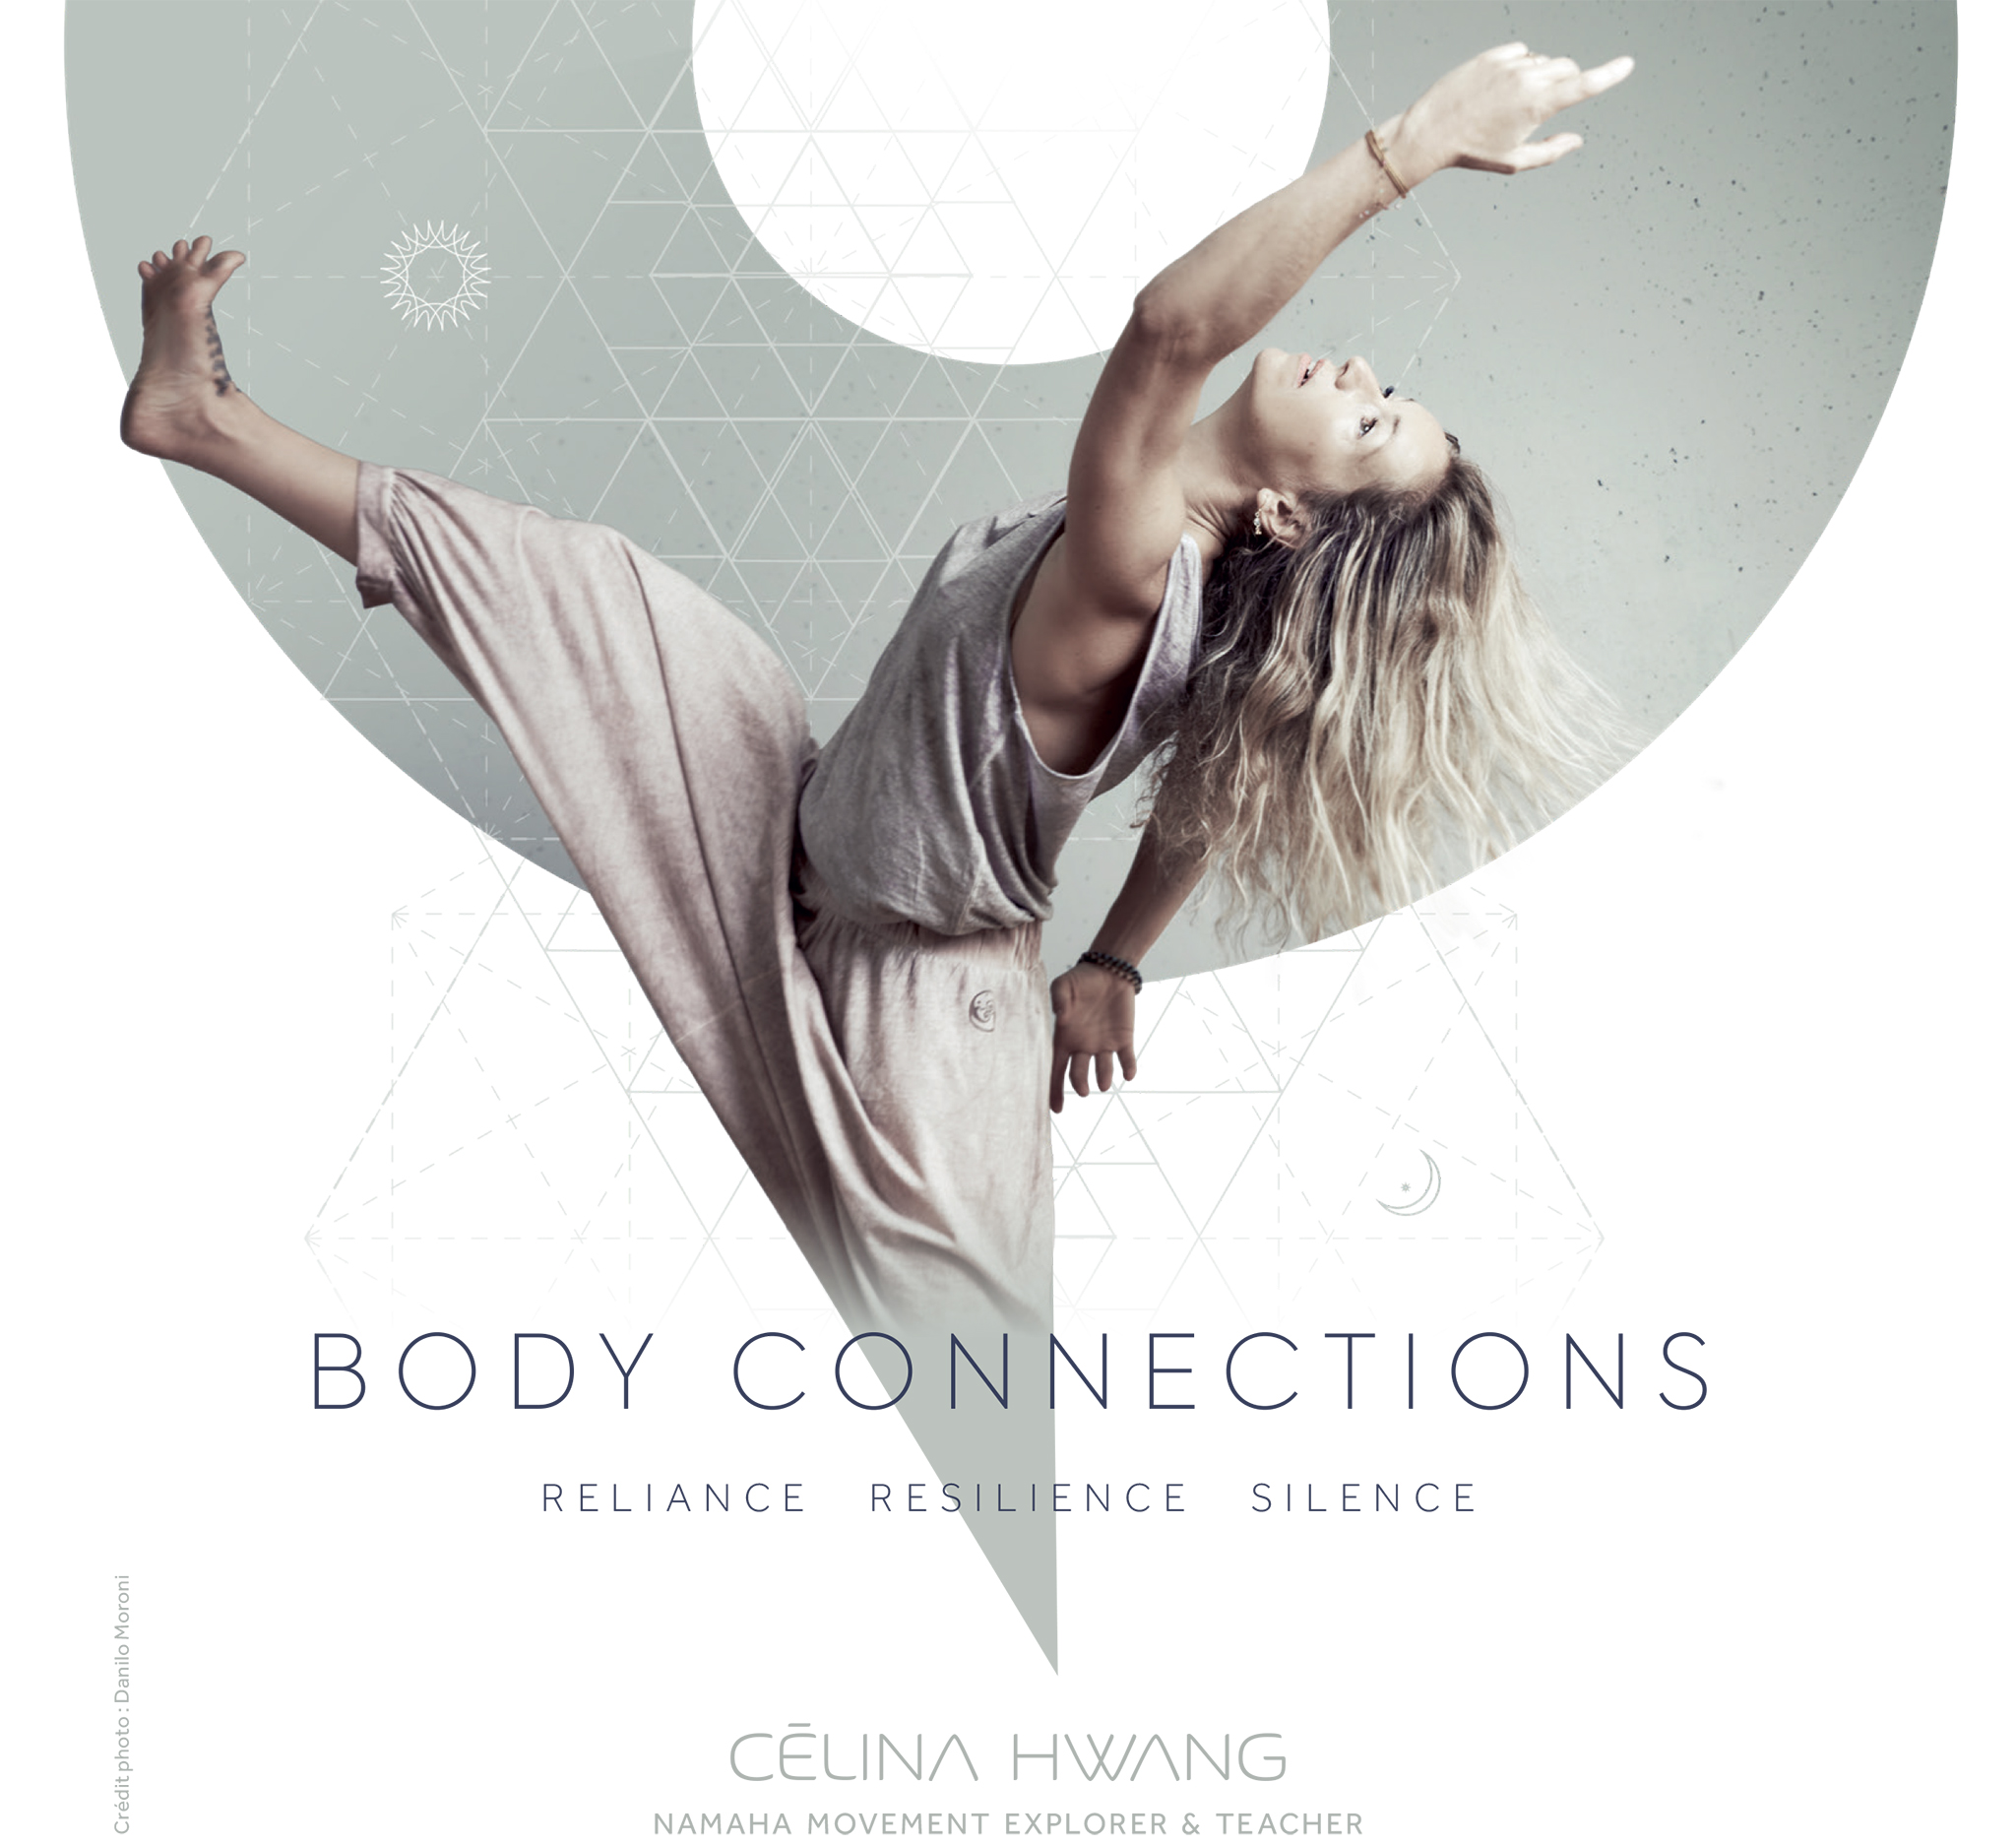 Body Connections - Celina Hwang photo© Danilo Moroni